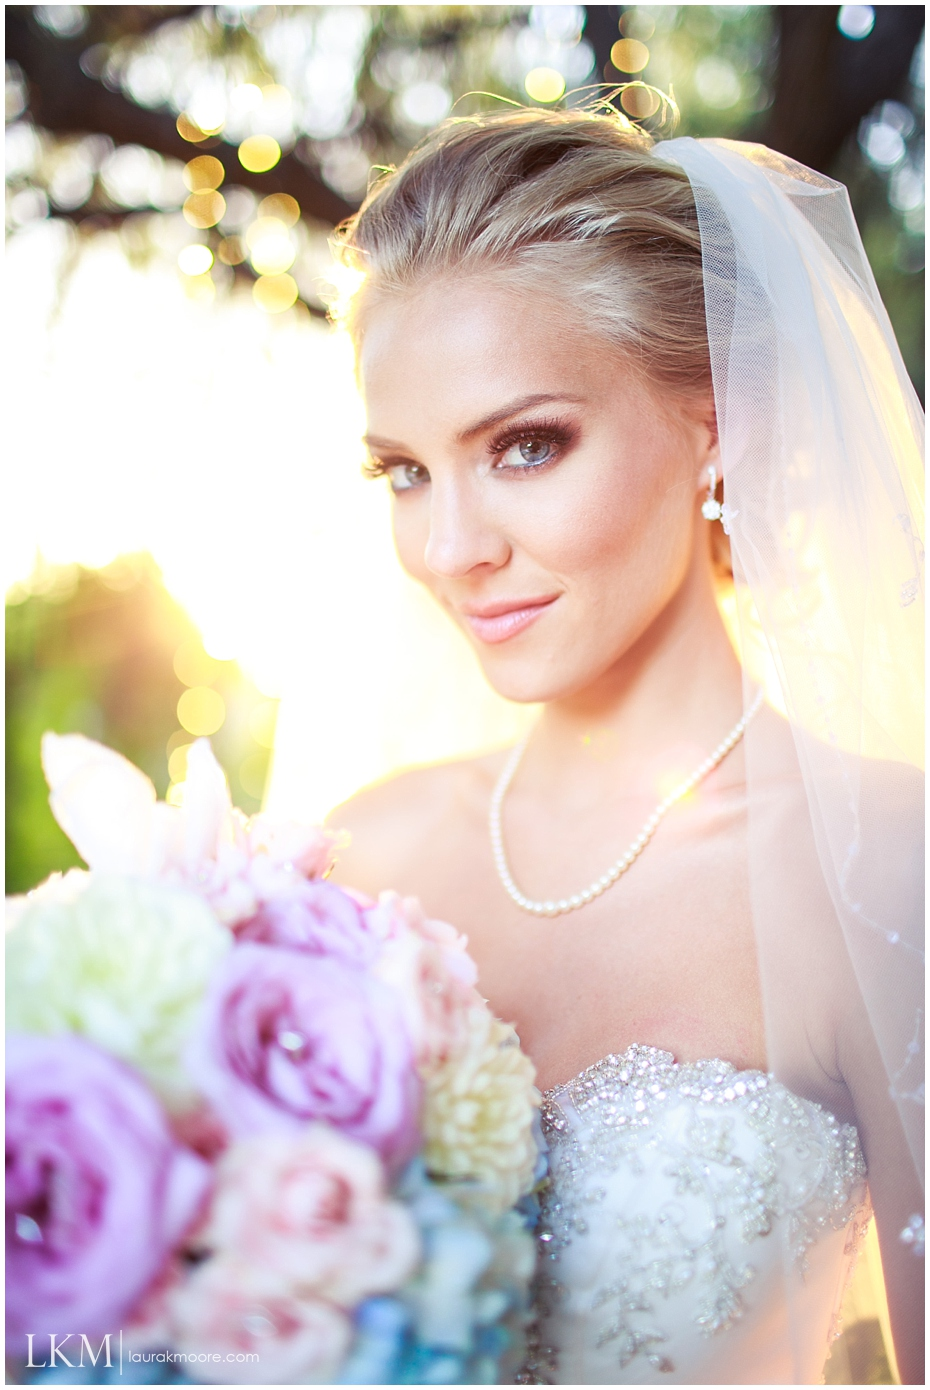 Kristen-Dalton-Celebrity-Wedding-Photography-The-Vineyards-Simi-Valley_0132